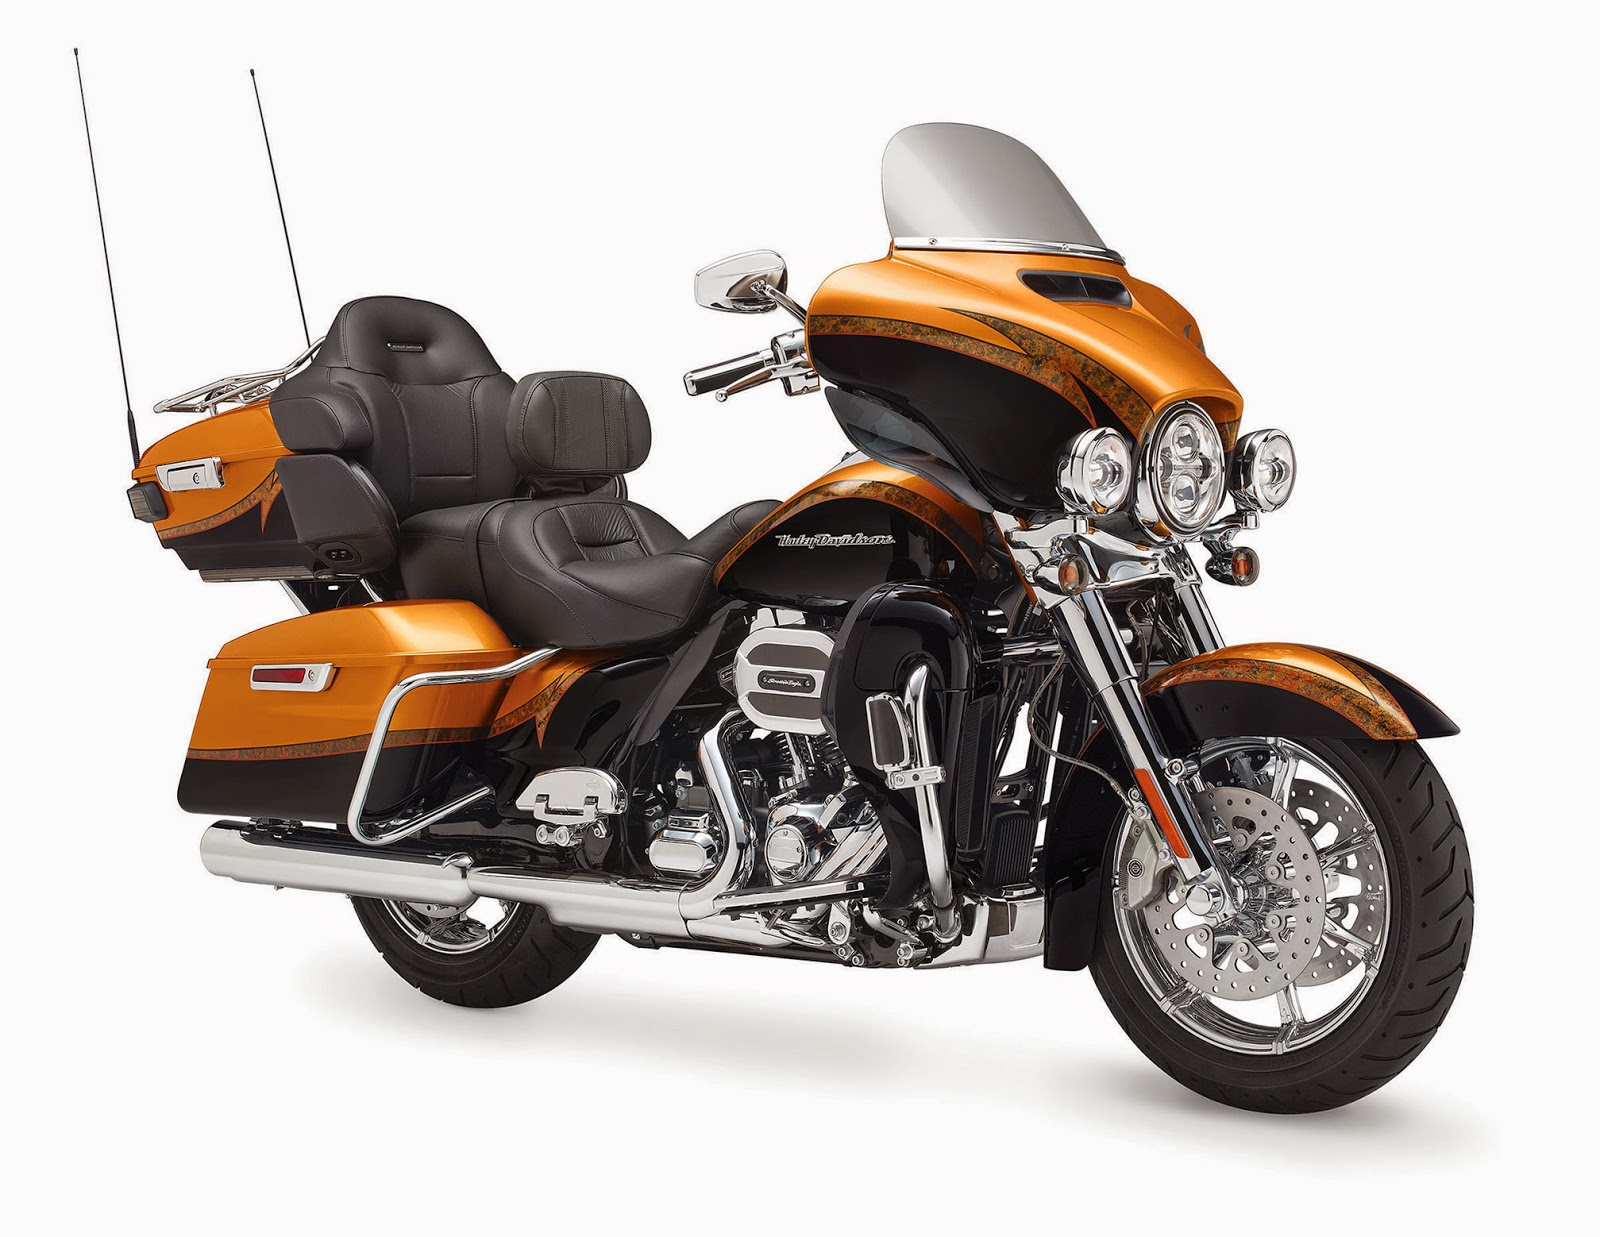 2014 Harley Davidson Ultra Limited Wiring Diagram 49 2015 Dyna December Flhtkse Cvo Limited4 At